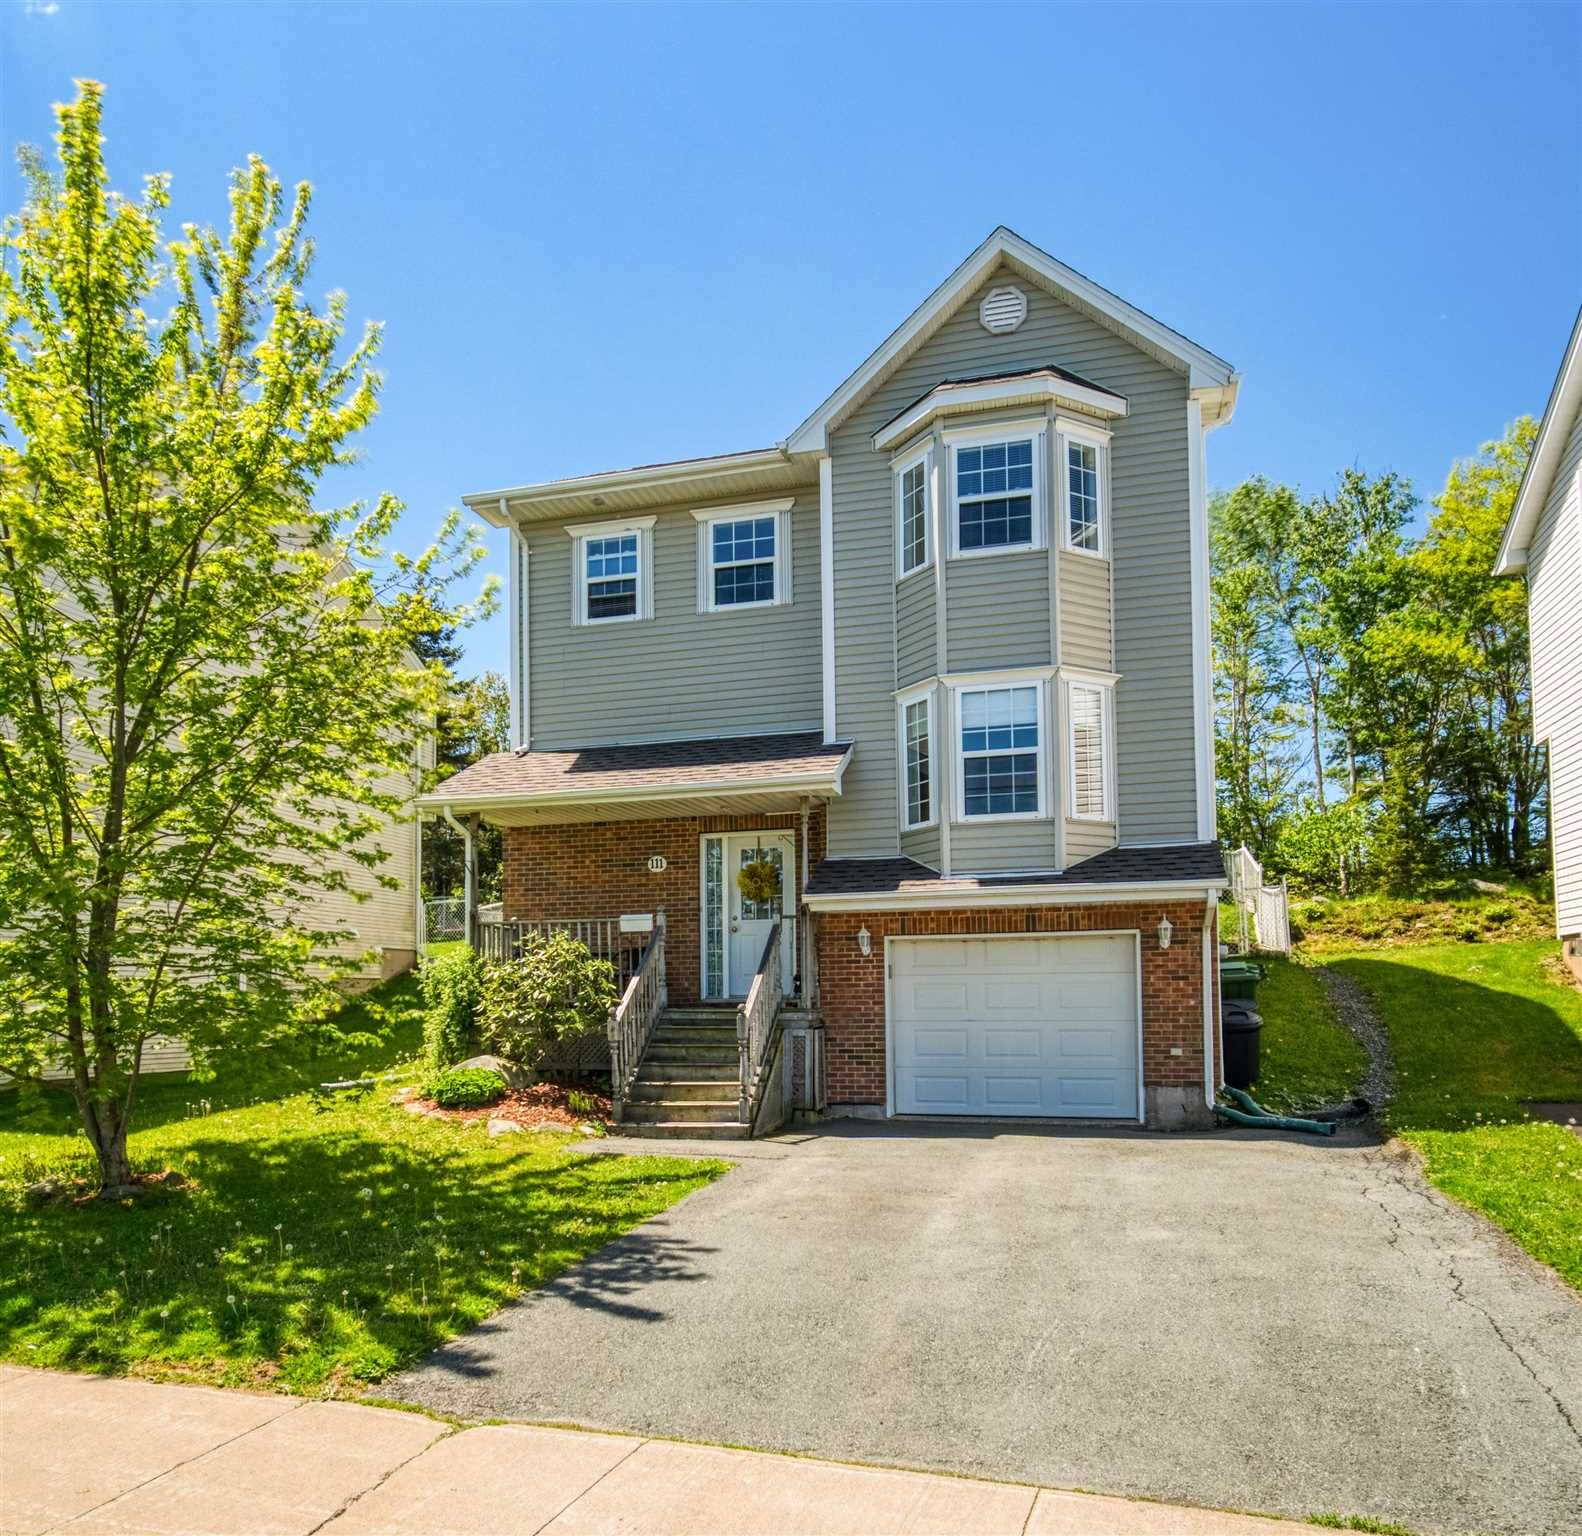 Main Photo: 111 Green Village Lane in Dartmouth: 12-Southdale, Manor Park Residential for sale (Halifax-Dartmouth)  : MLS®# 202114071